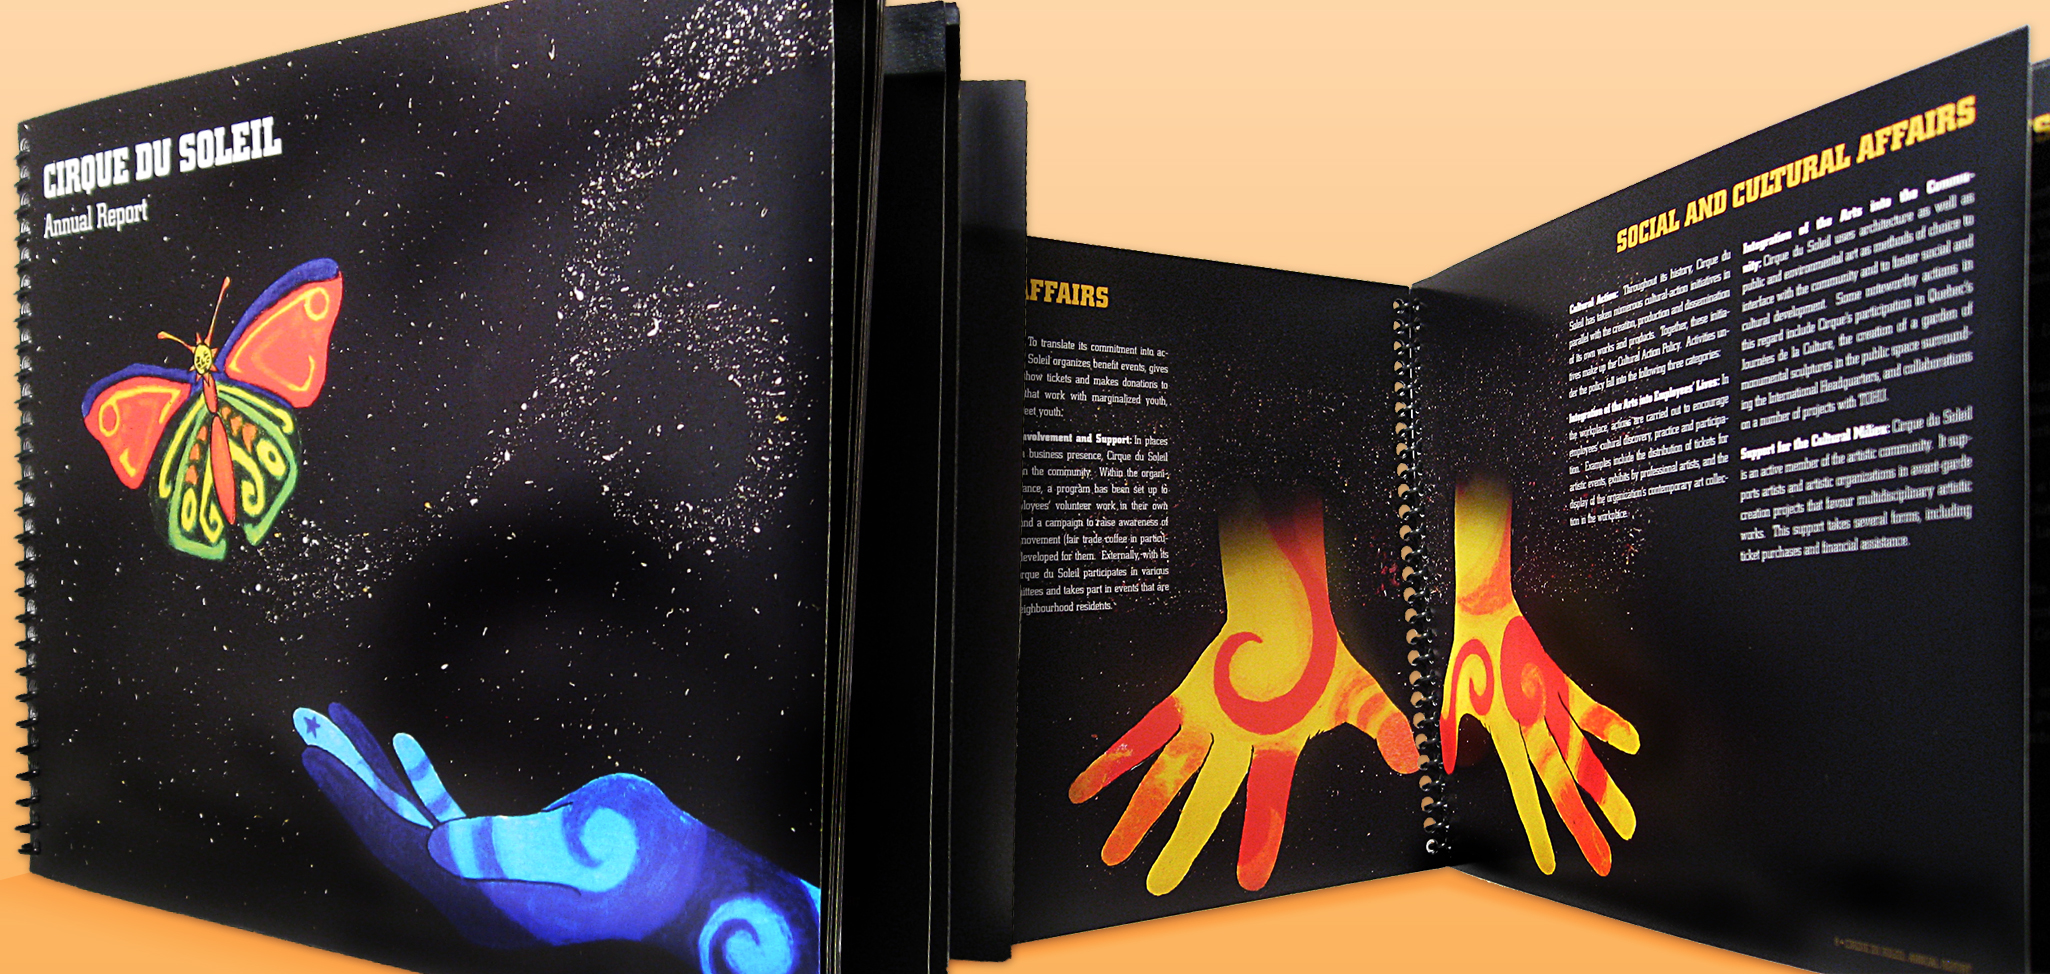 Annual Report Concept For Cirque Du Soleil